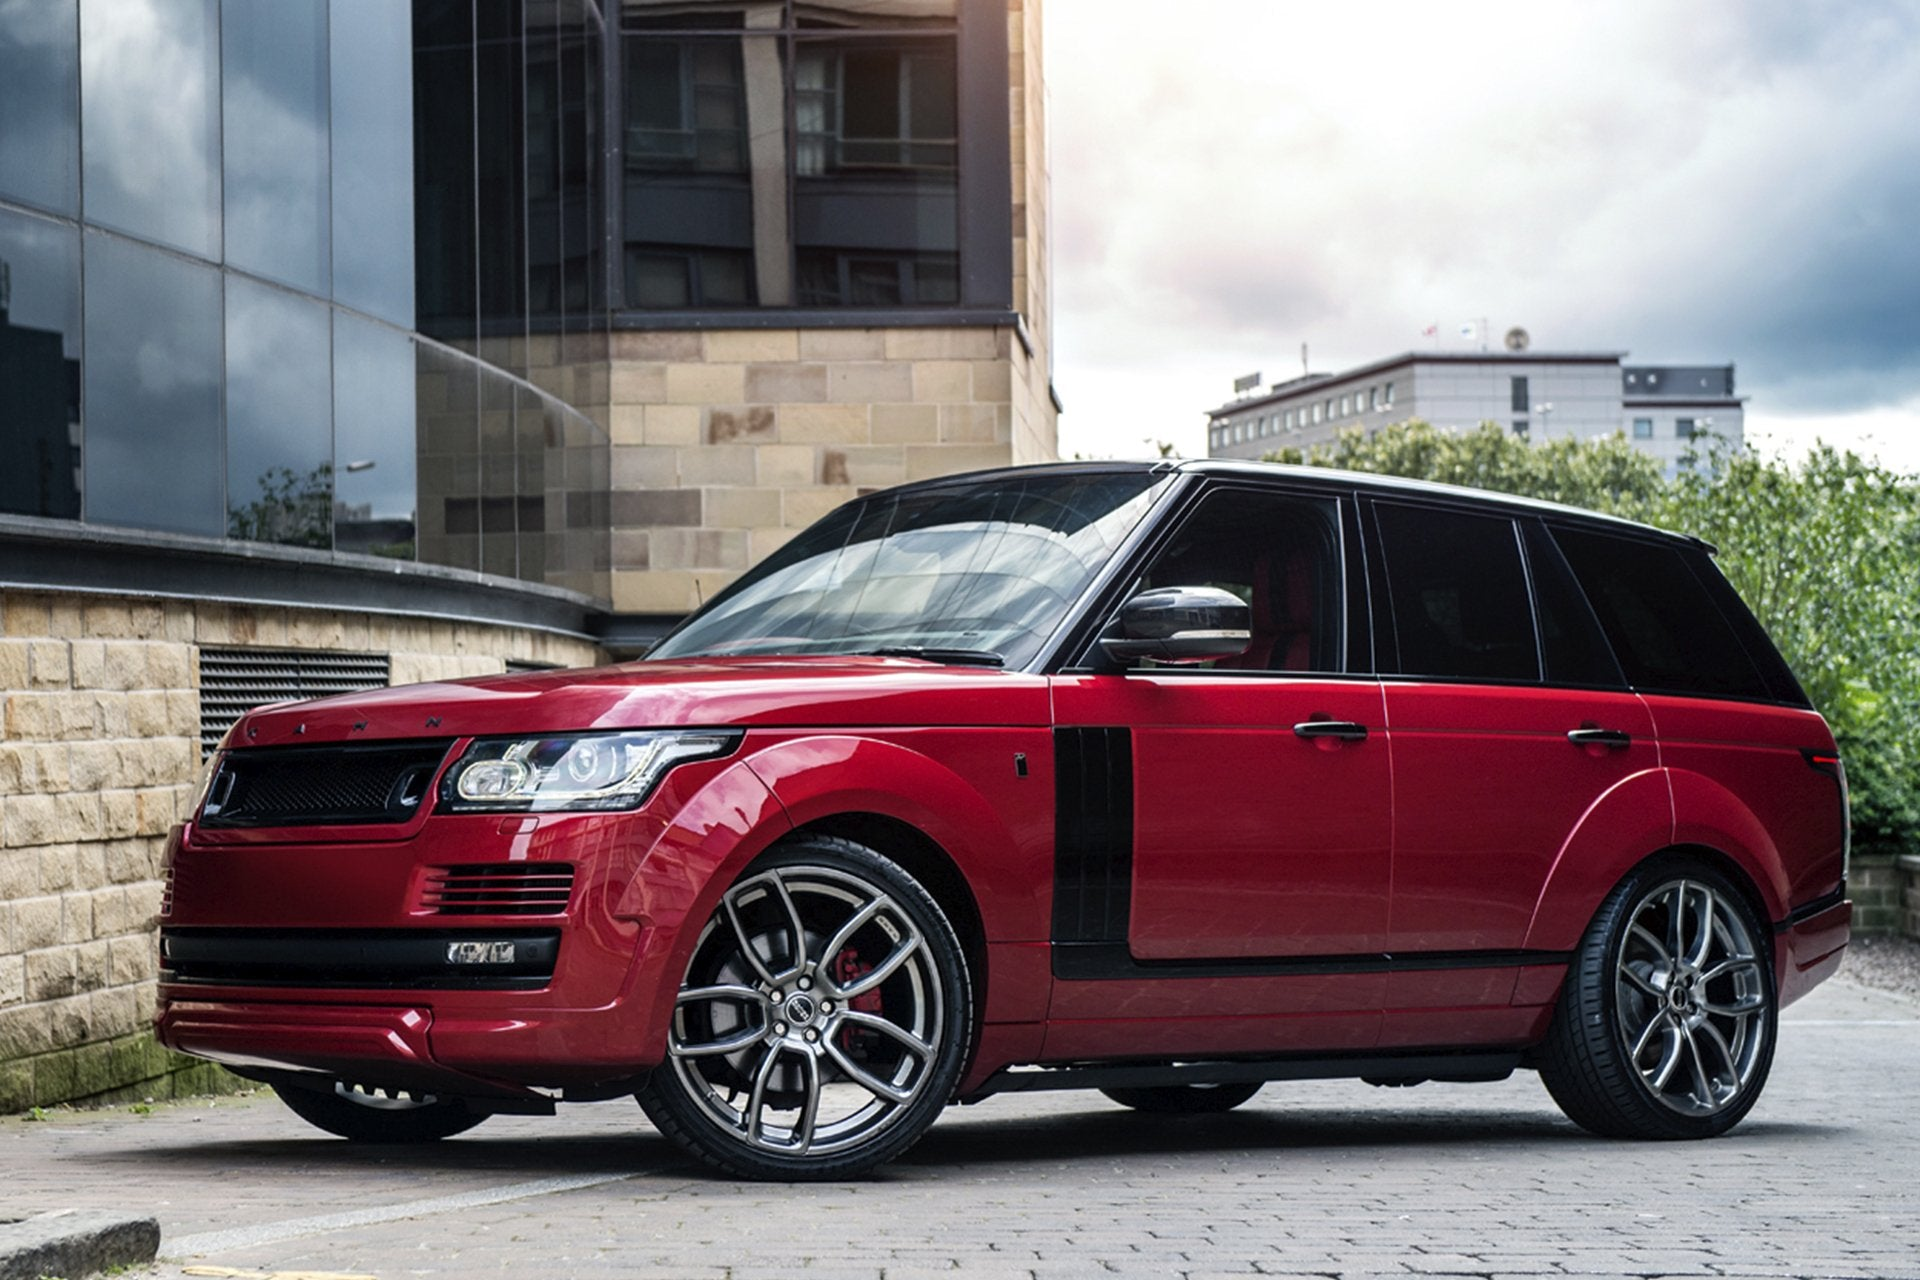 Range Rover (2013-2018) Rs600 Exterior Body Styling Pack by Kahn - Image 2032